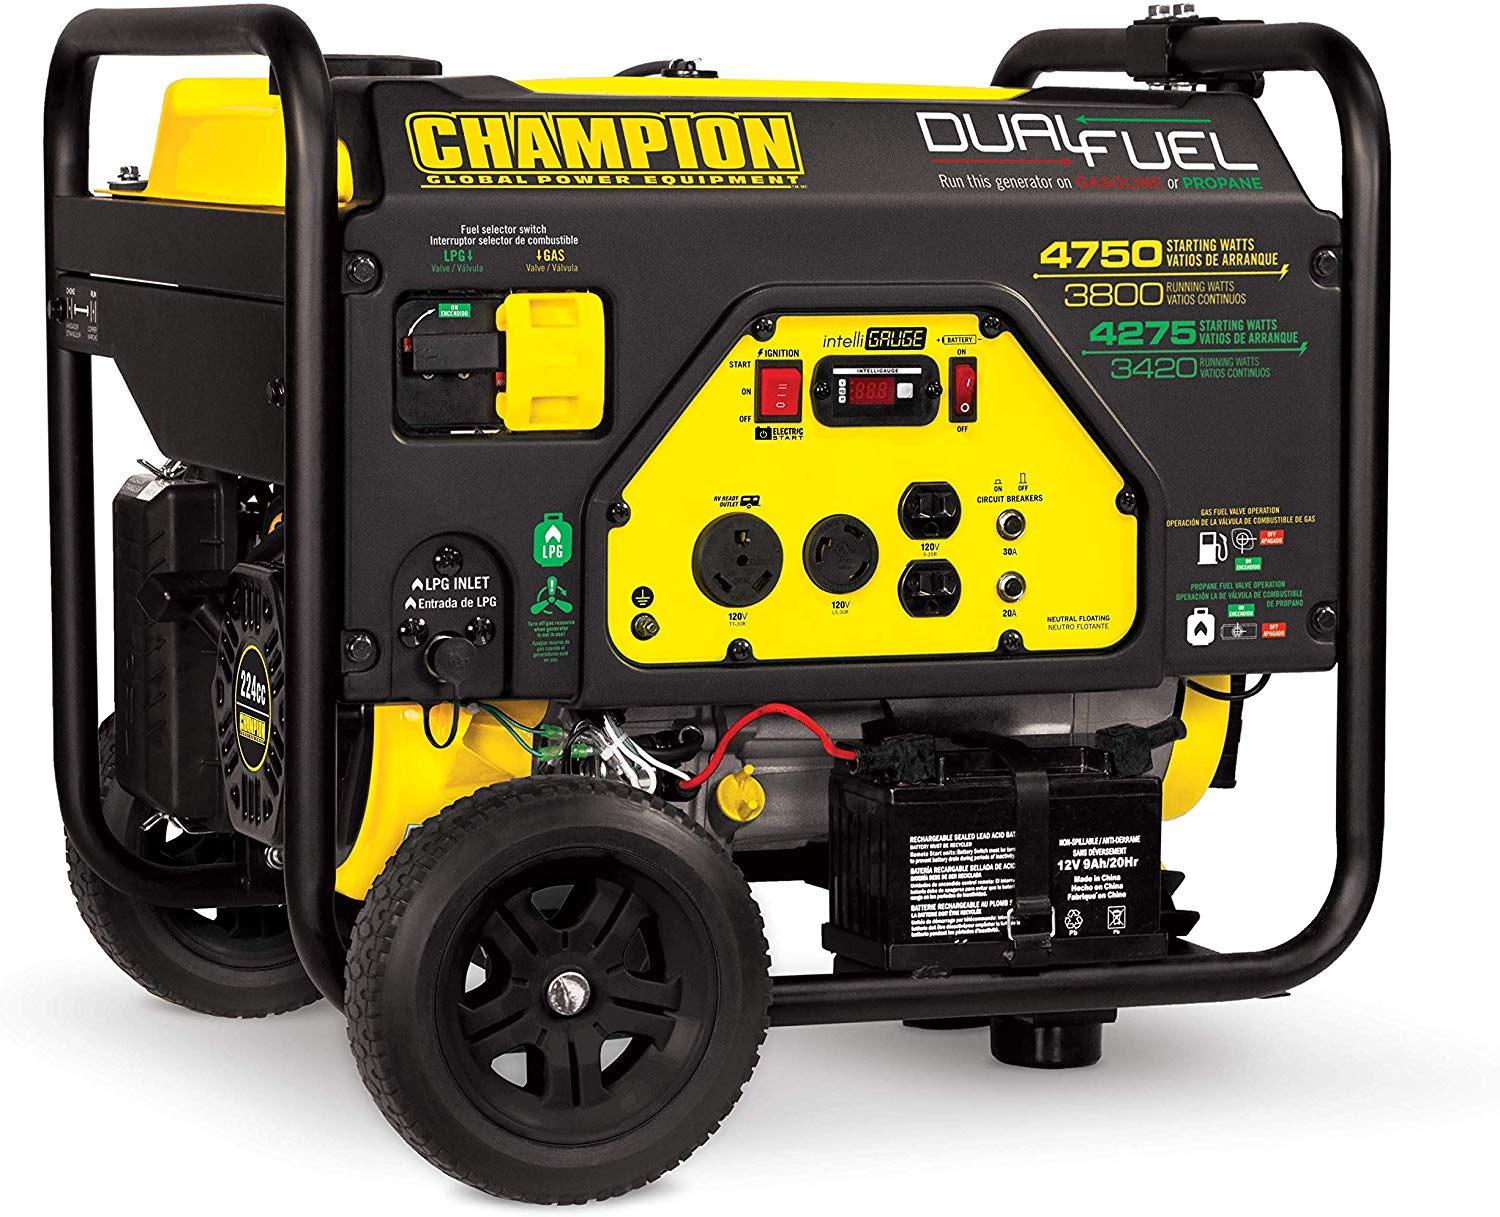 Champion Dual Fuel Electric Start Portable Generator, 3800-Watt